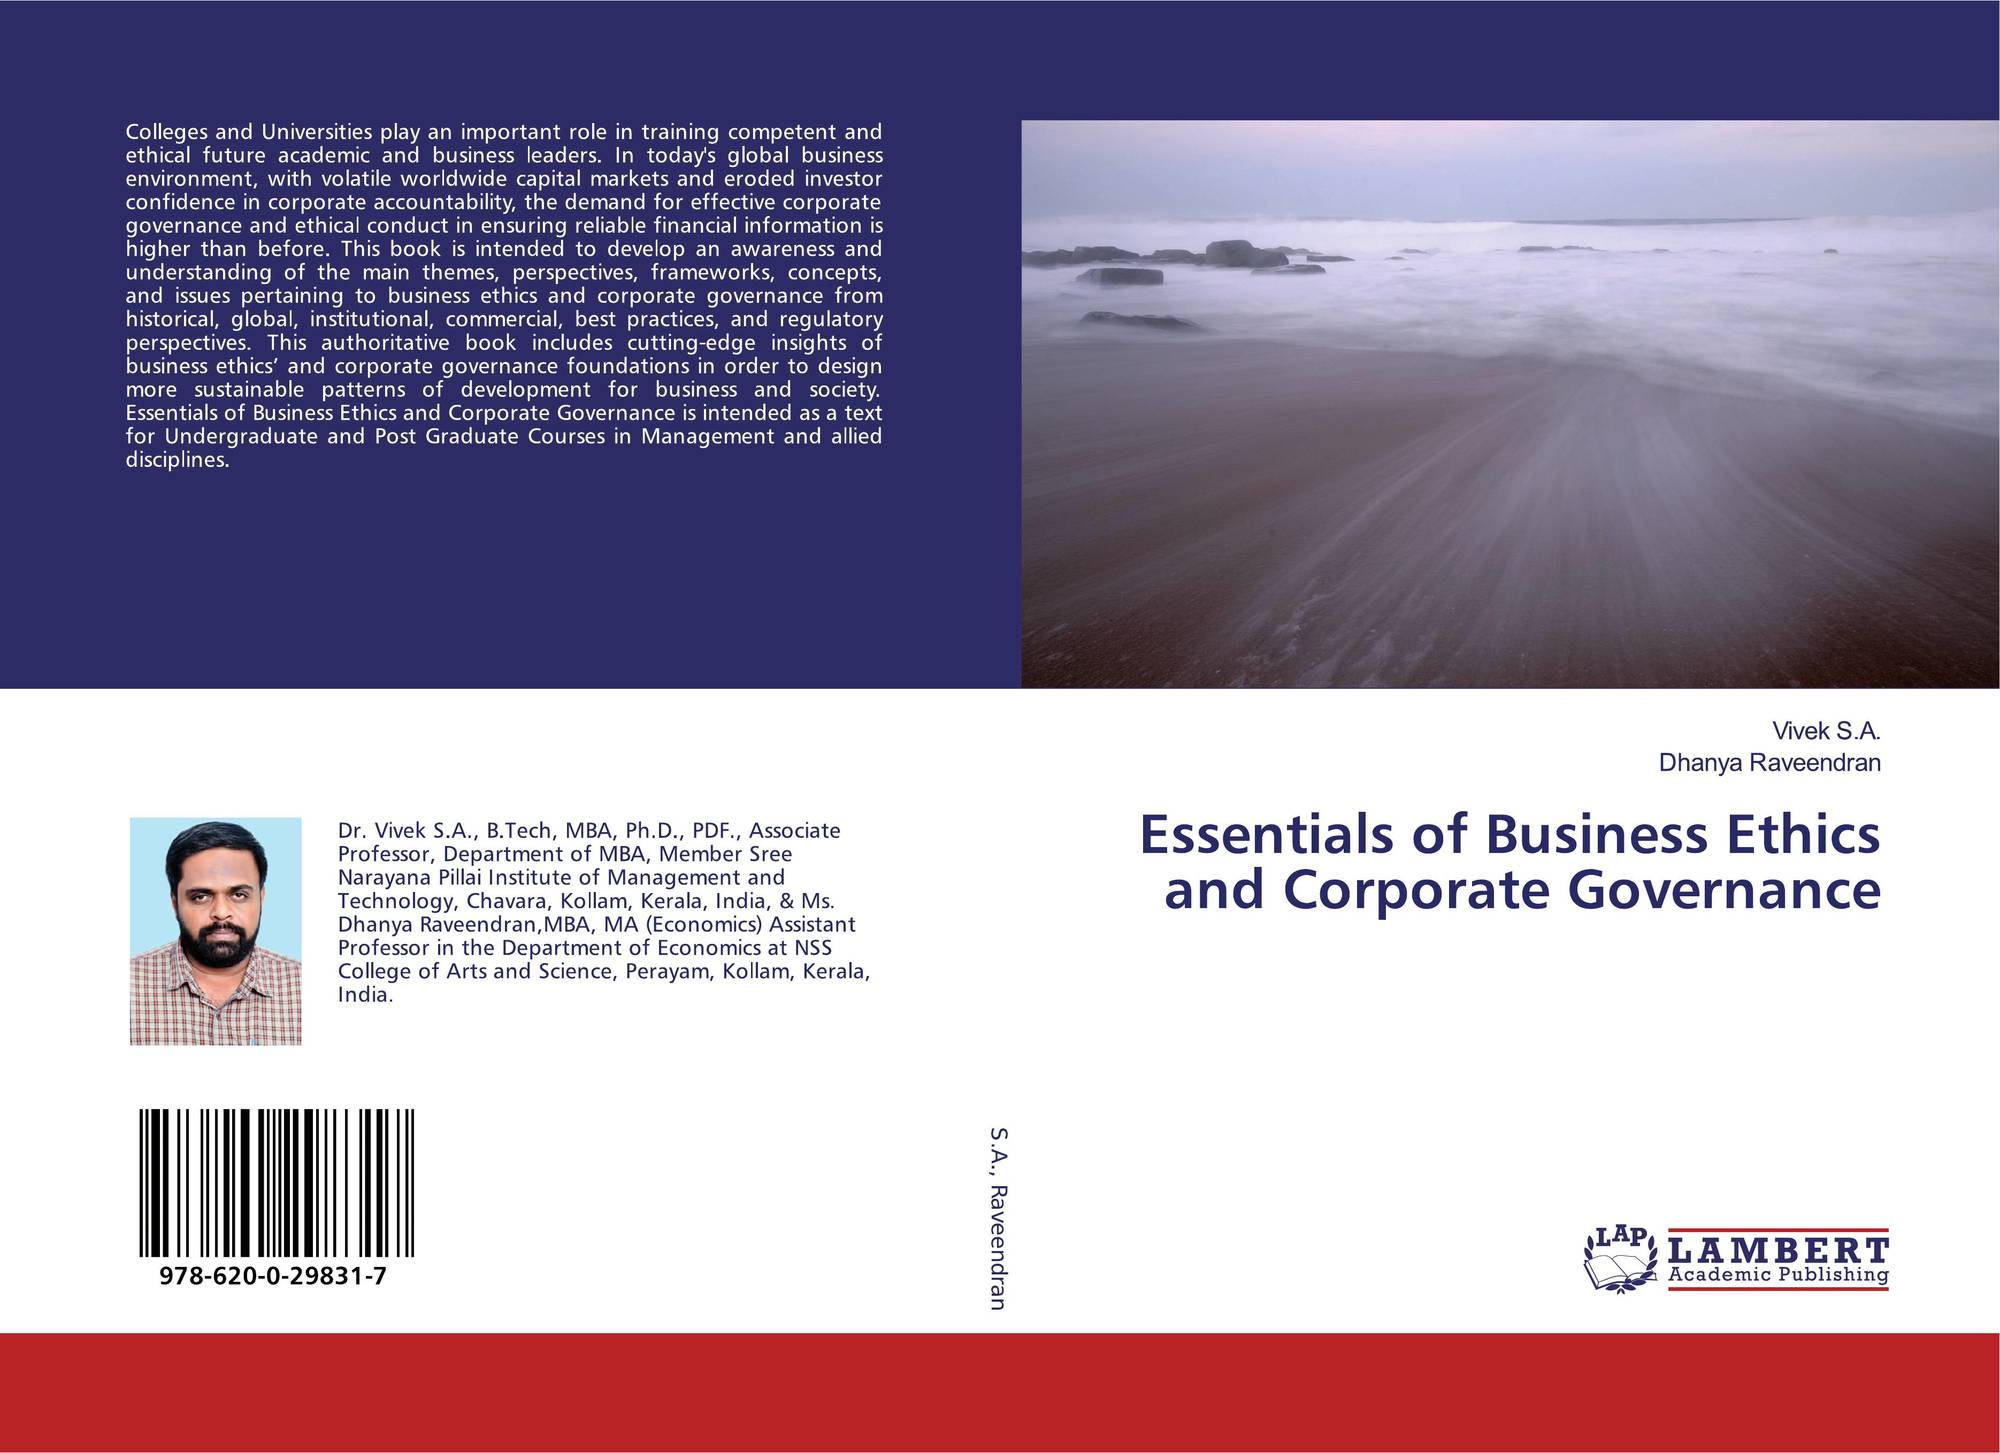 Essentials of Business Ethics and Corporate Governance, 978